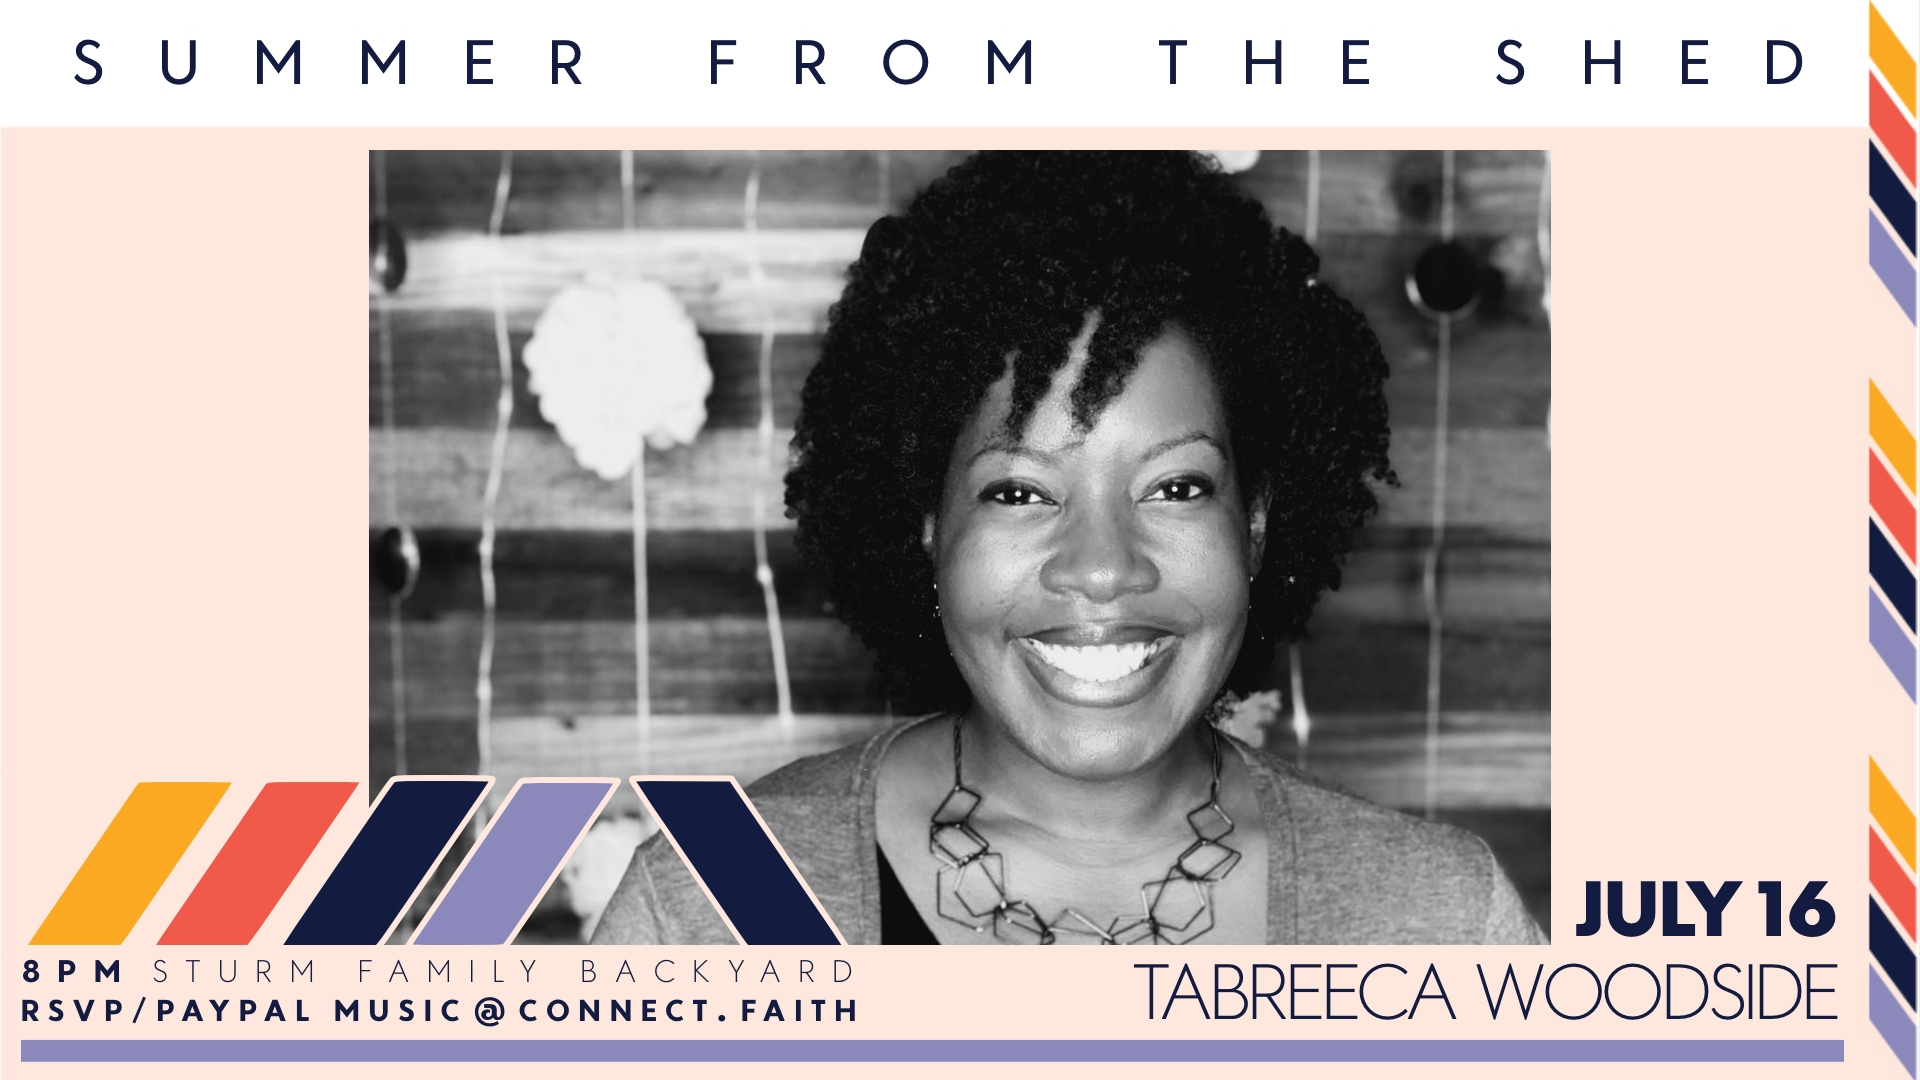 Summer from the Shed | Tabreeca Woodside | Concert